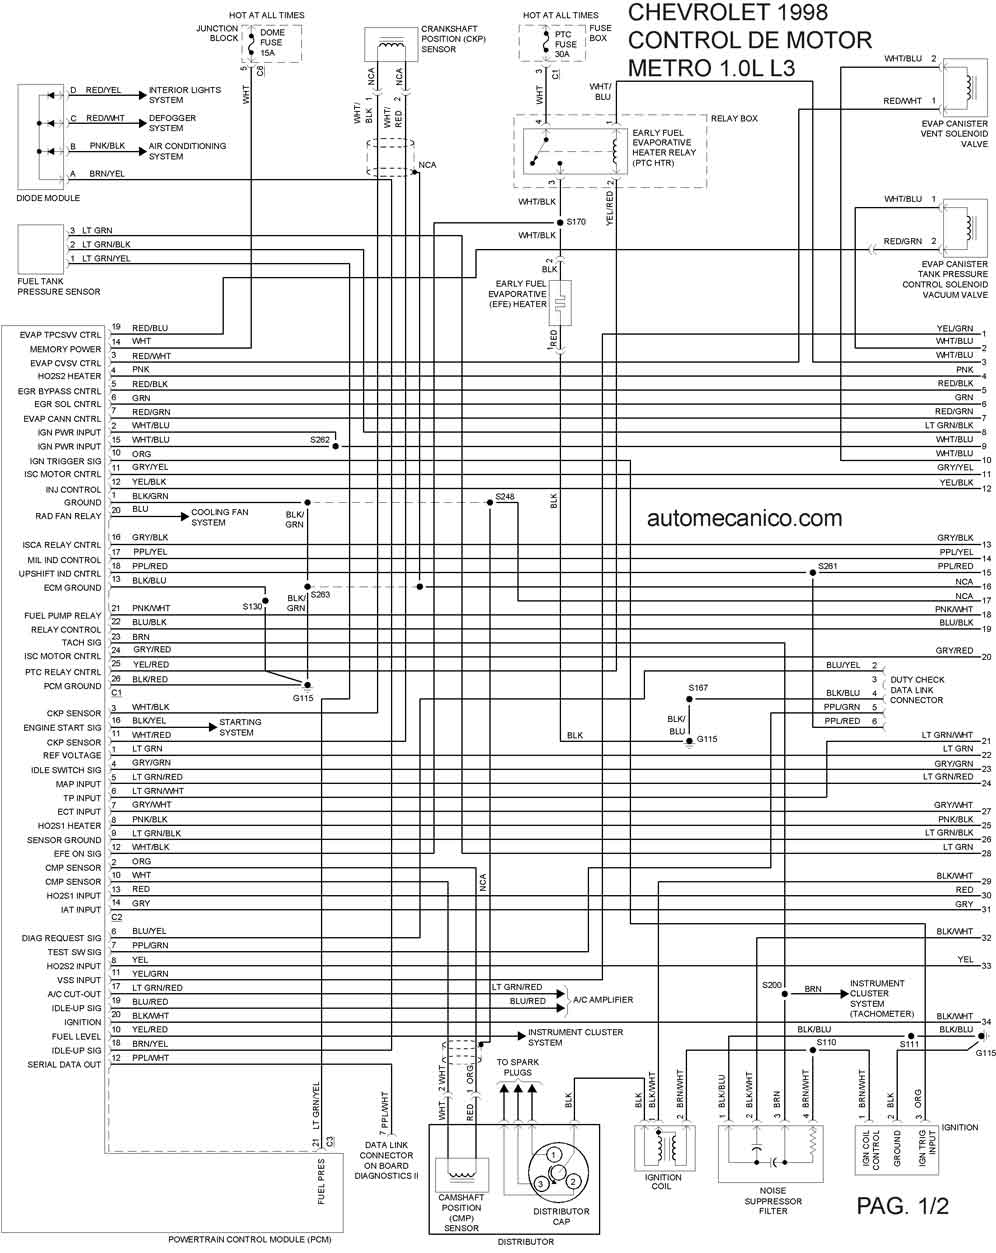 chevy aveo 2005 electrical diagram